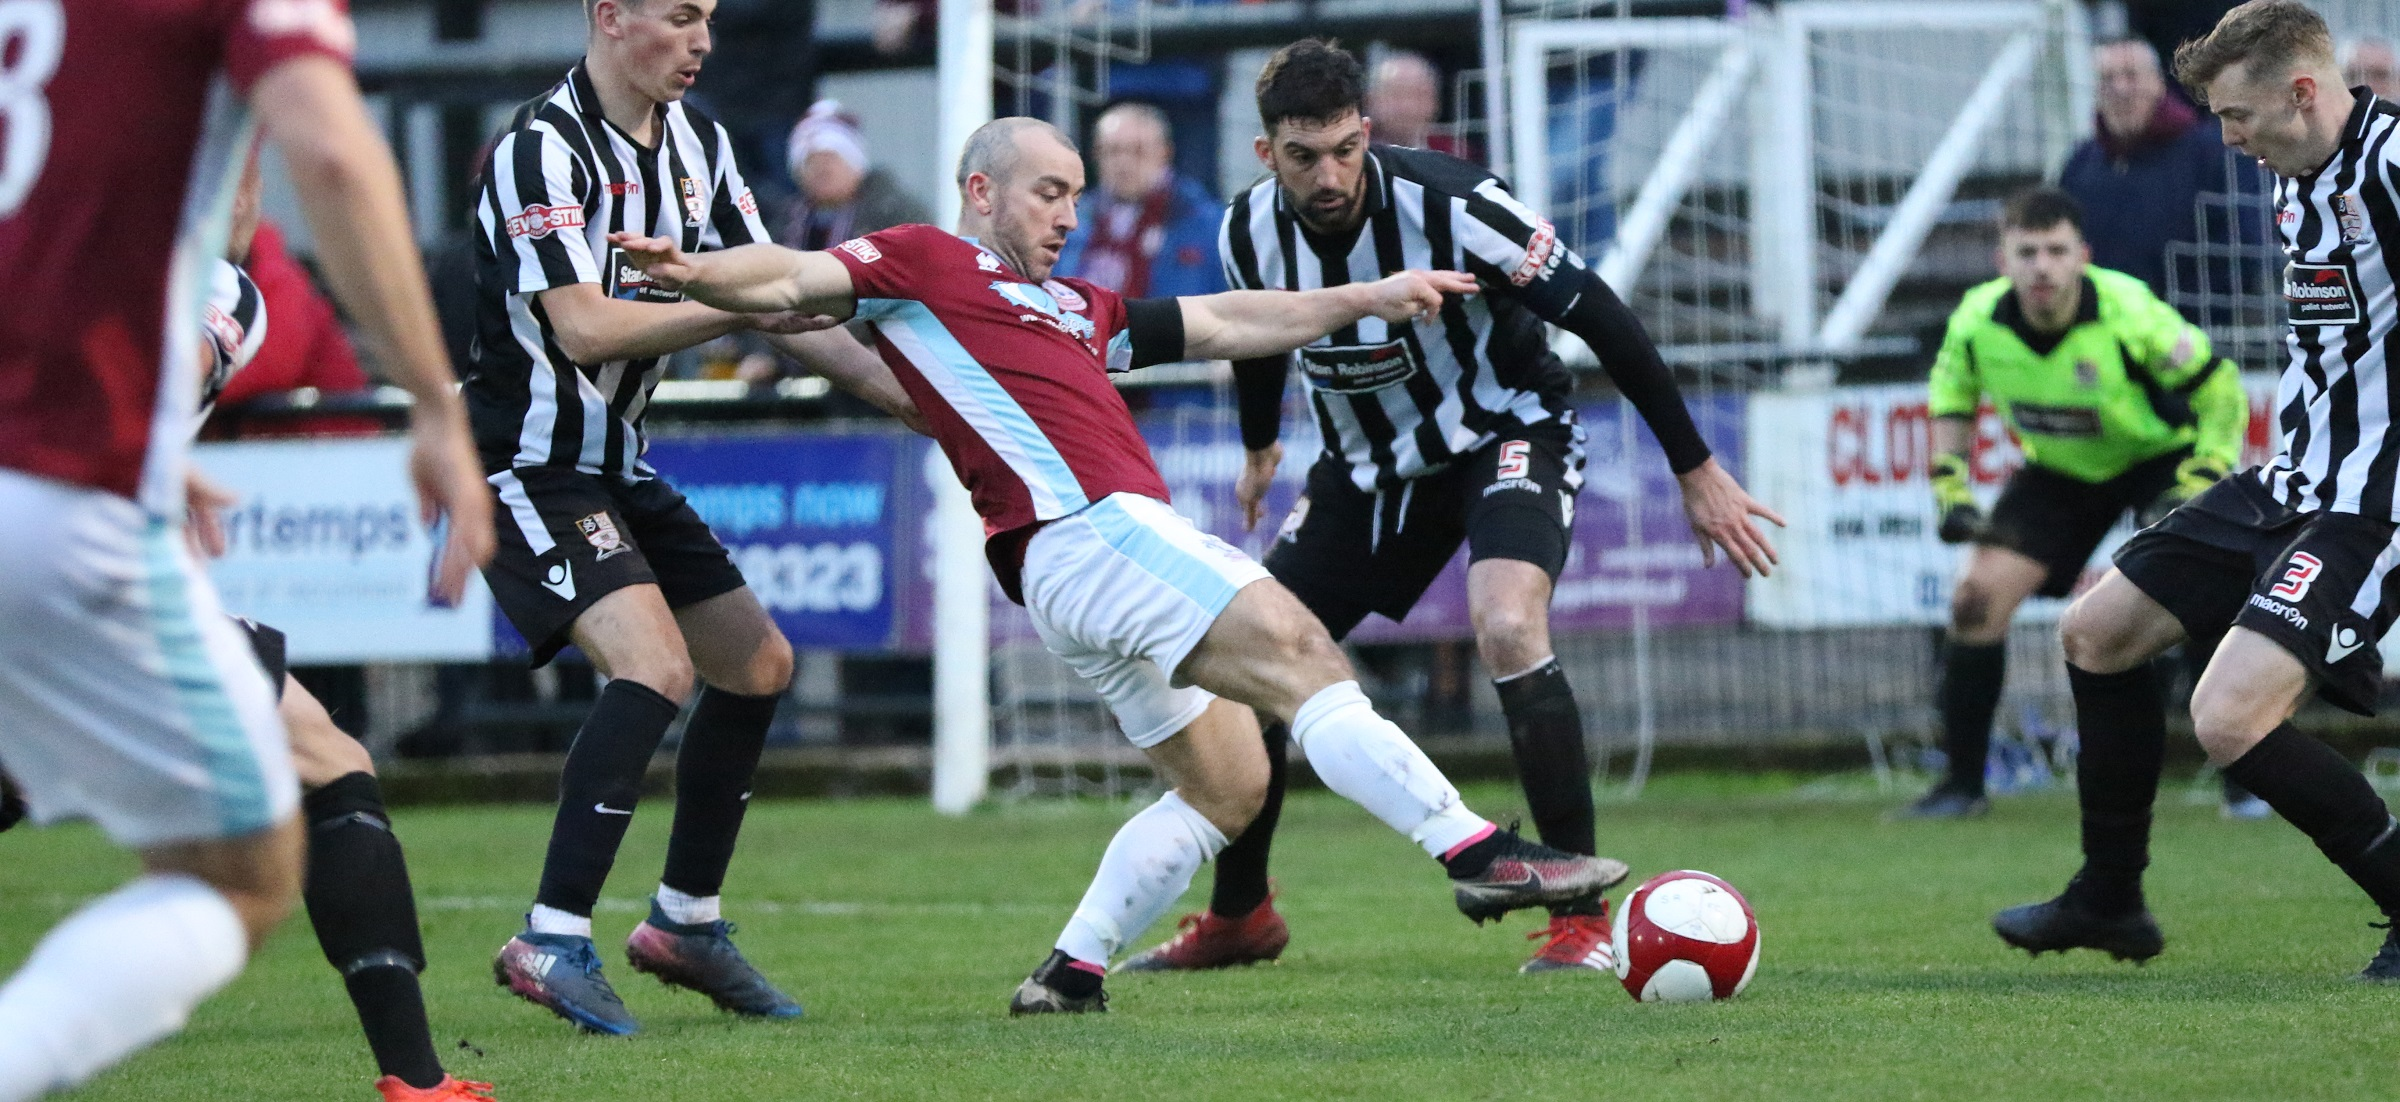 Stafford Rangers 3-1 South Shields: Mariners beaten in FA Trophy